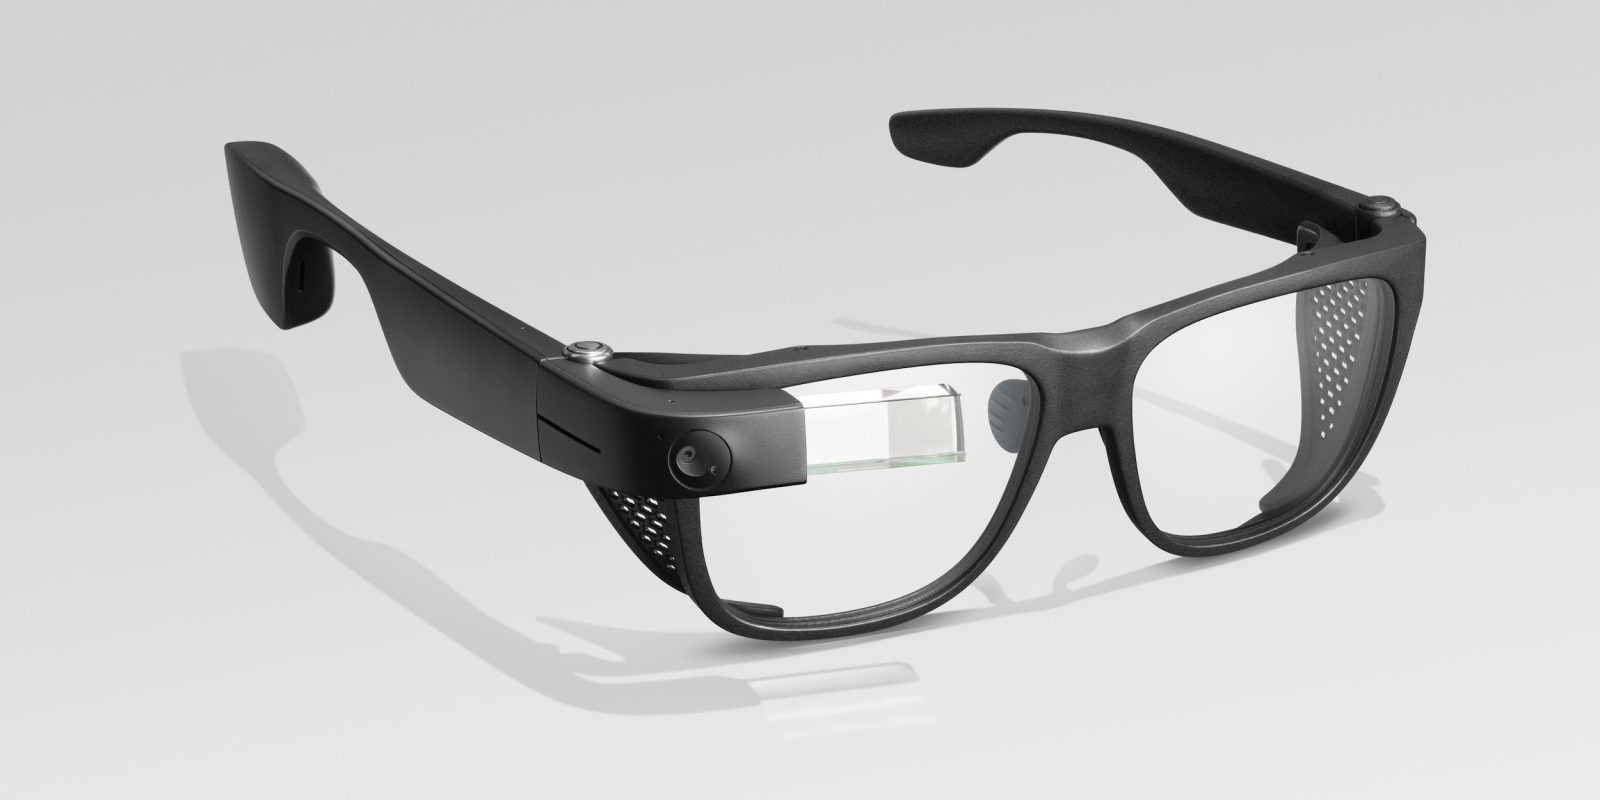 Glass Enterprise Edition 2 launches at $999, graduates from X to Google AR/VR